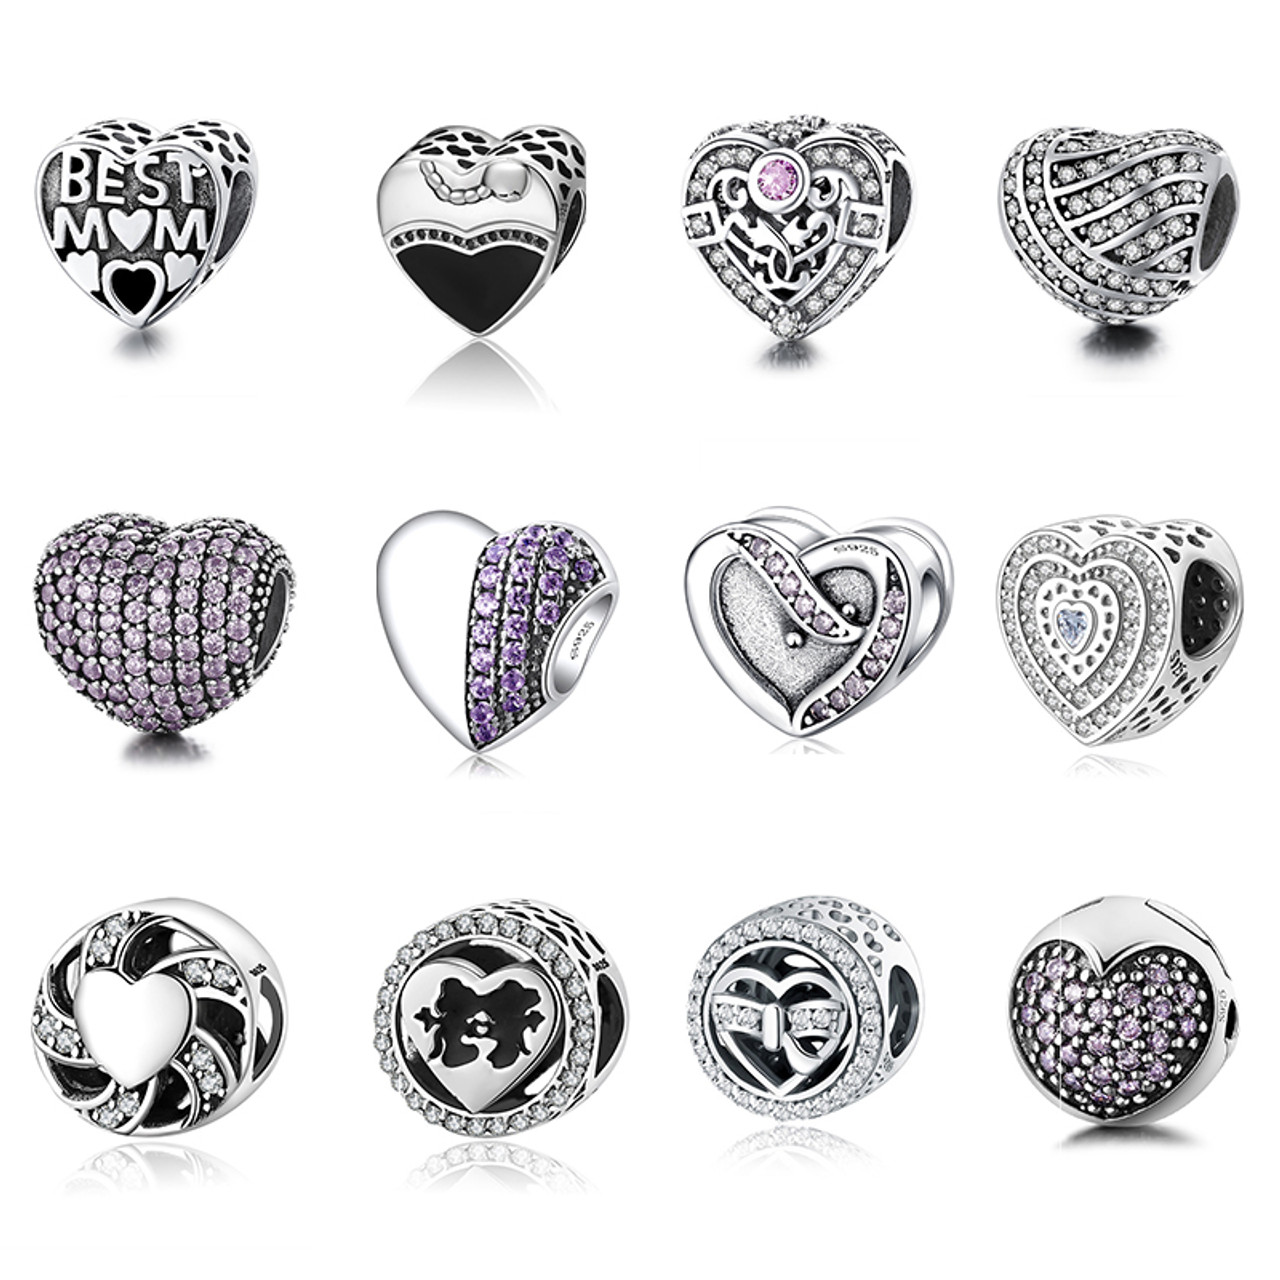 feeb6b3c64b63 12 Style Authentic 925 Sterling Silver Heart Shape Beads Charm Fit pandora  Charm Bracelet DIY Original Silver Jewelry